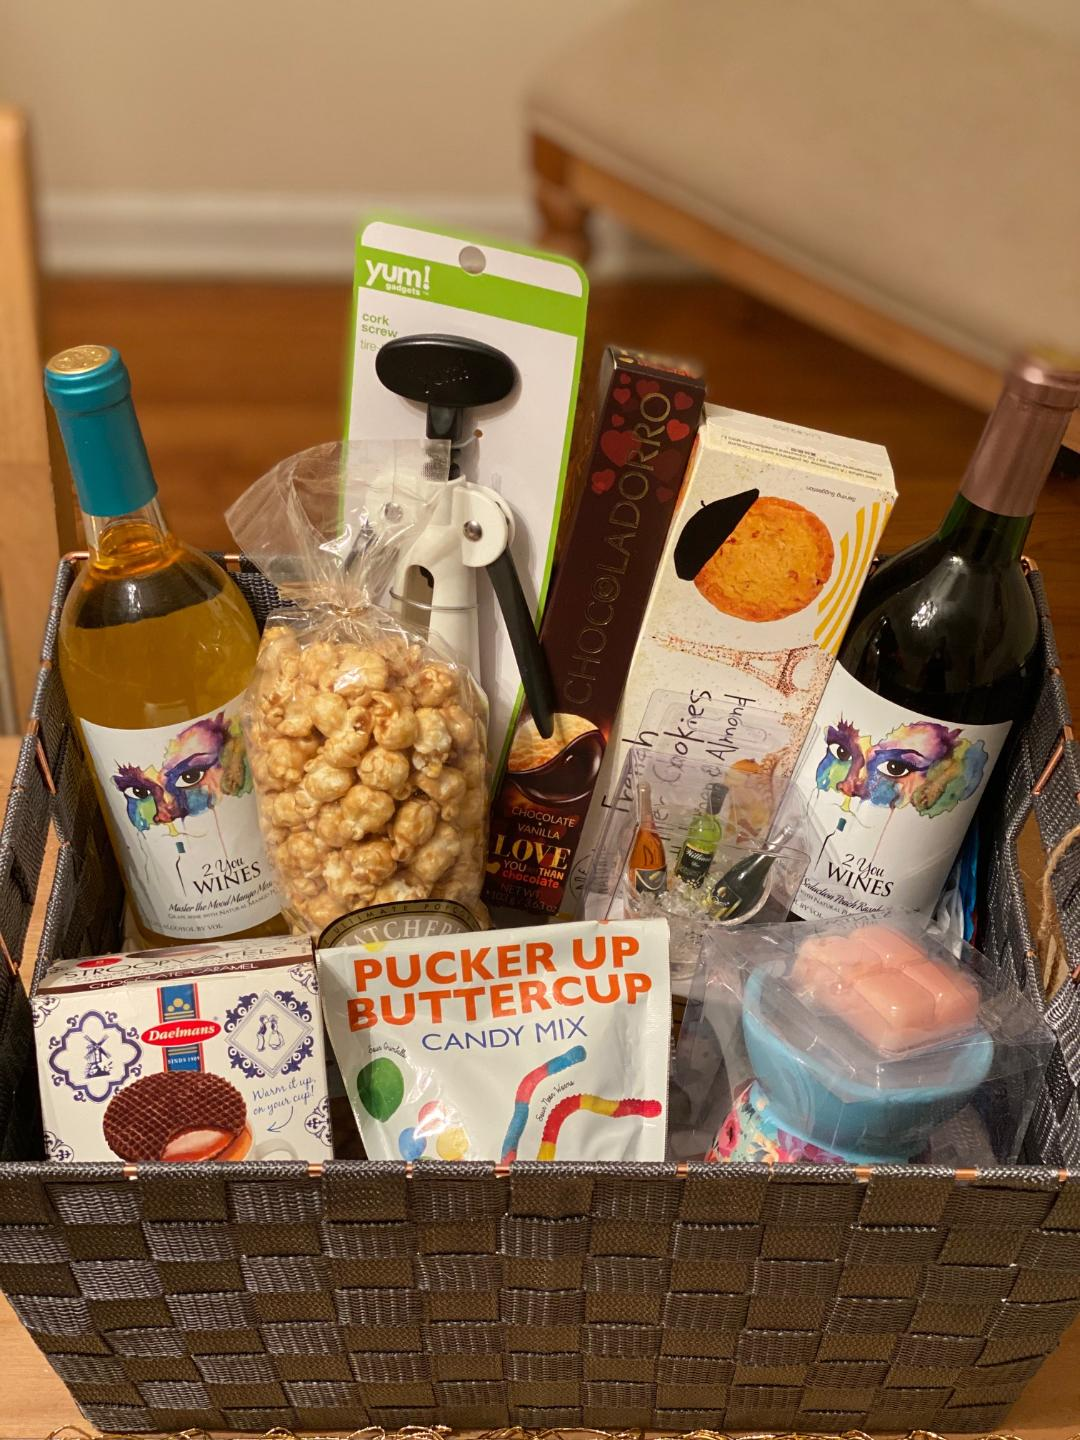 All occasion wine gift baskets